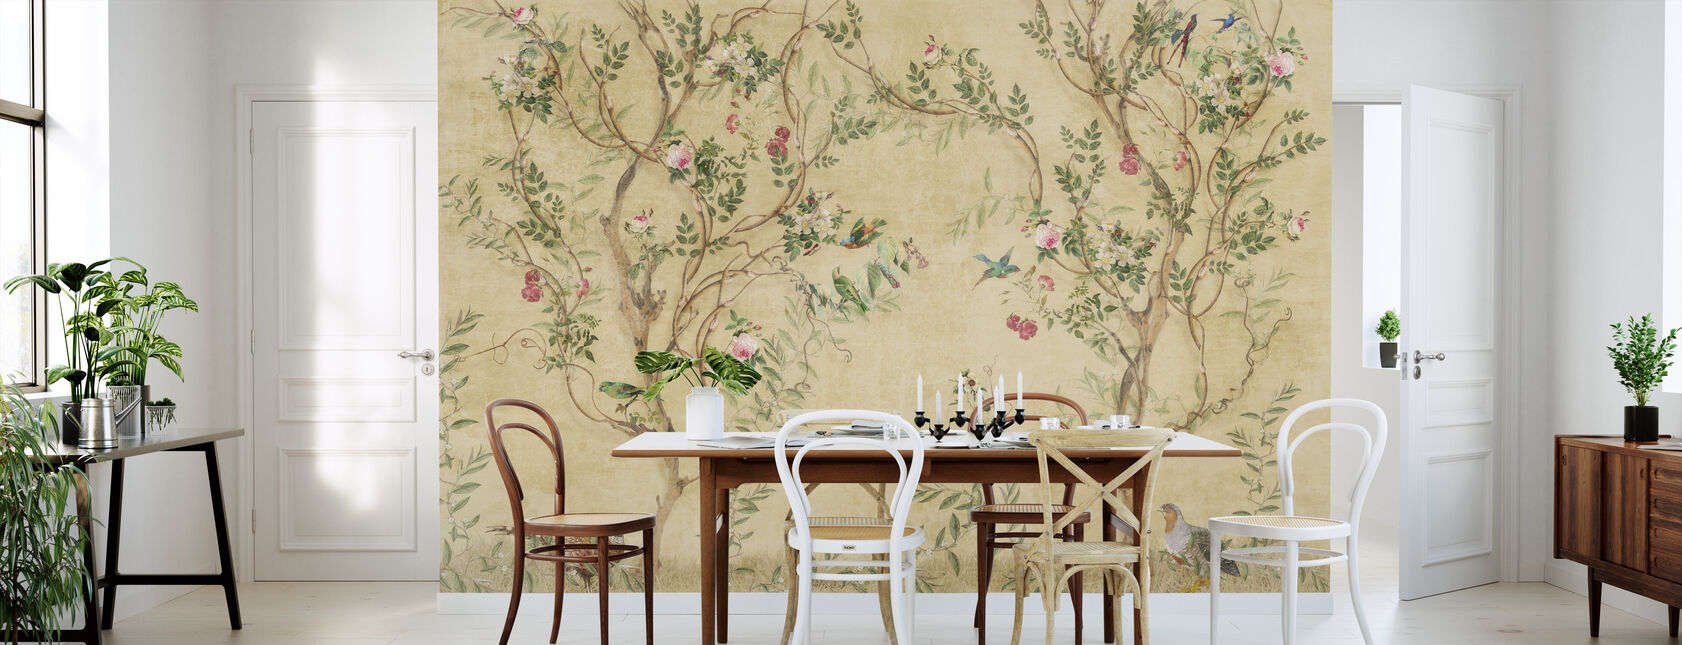 Pretty Birds in Branches - Wallpaper - Kitchen